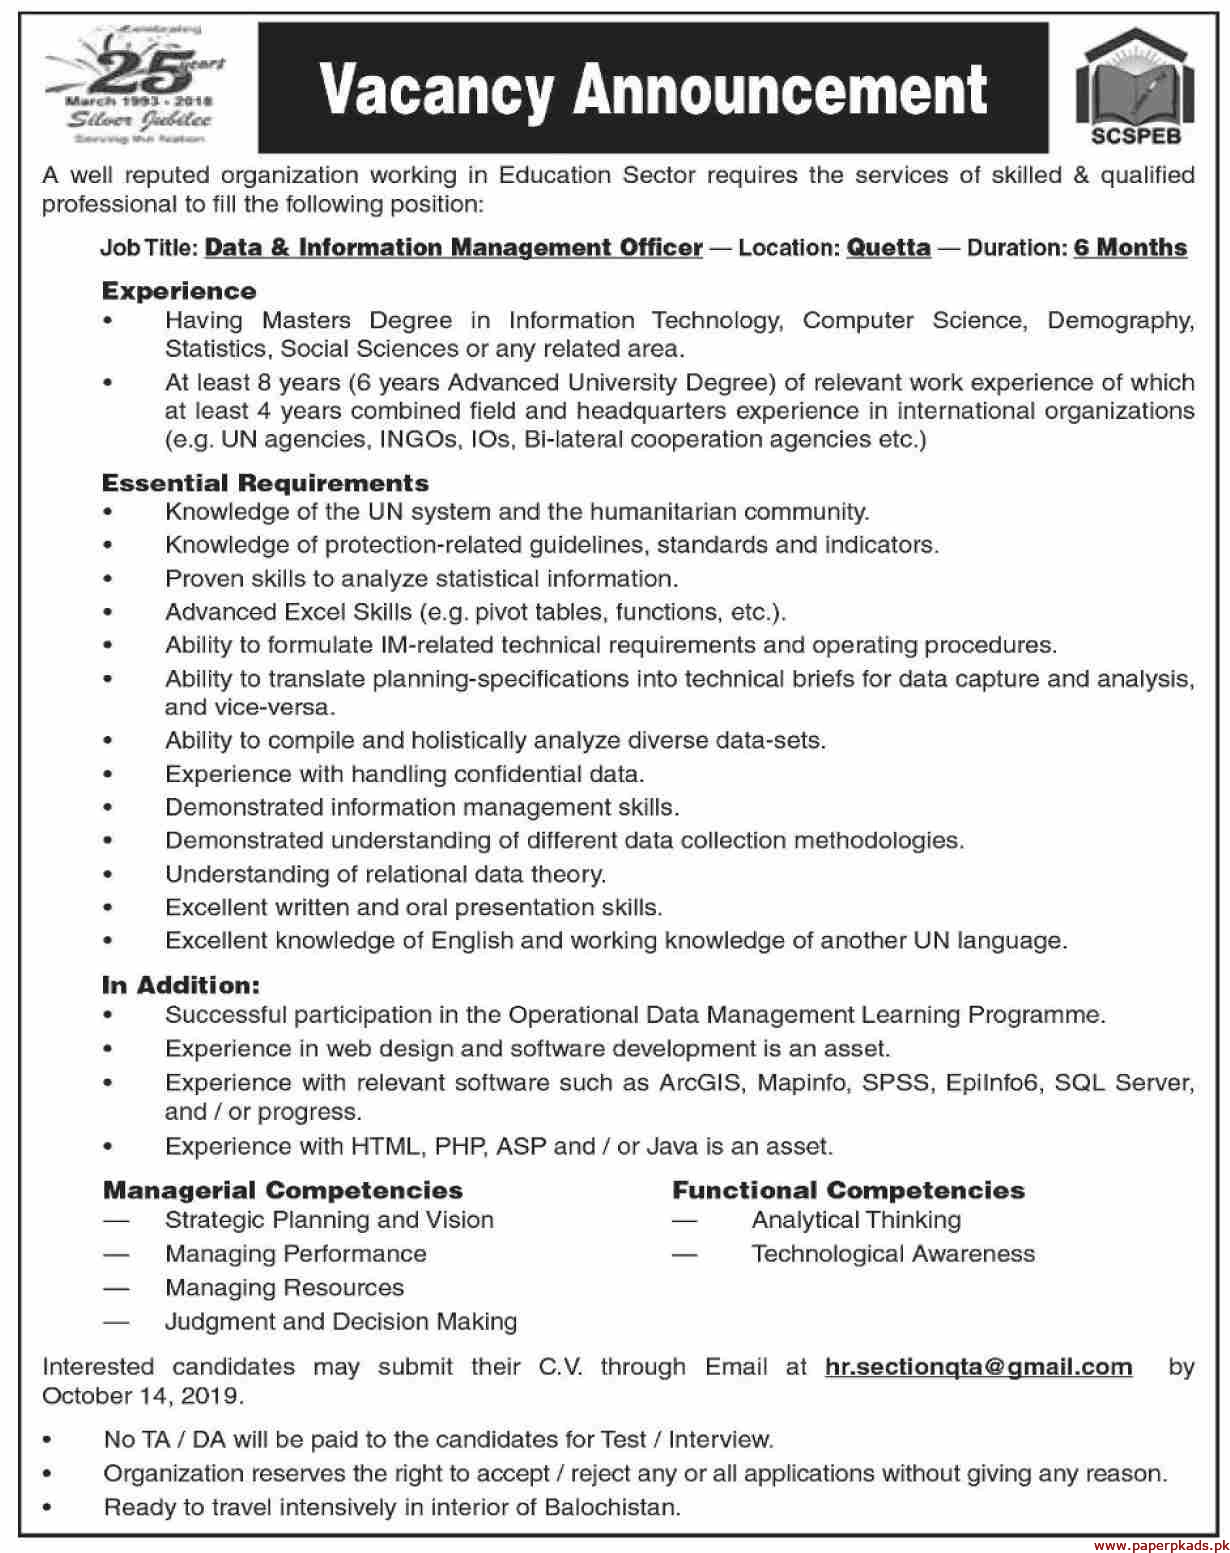 Education Sector Staff Required